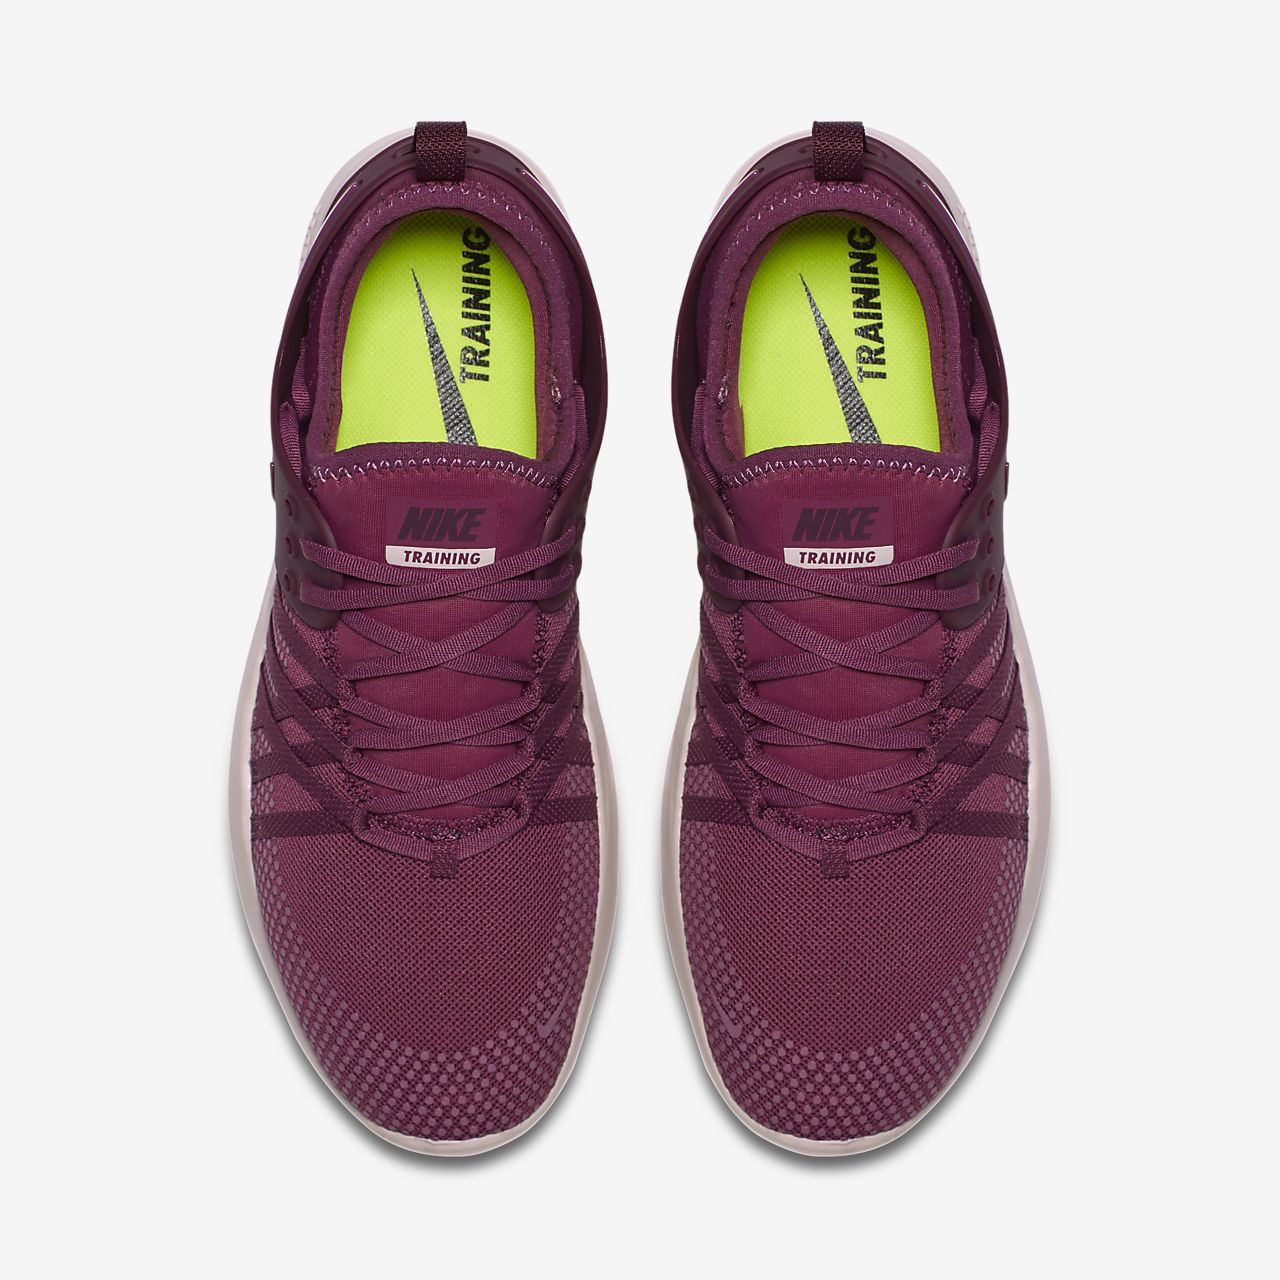 low priced a7e9c ee7e7 ... Nike Free TR 7 Womens Training Shoe